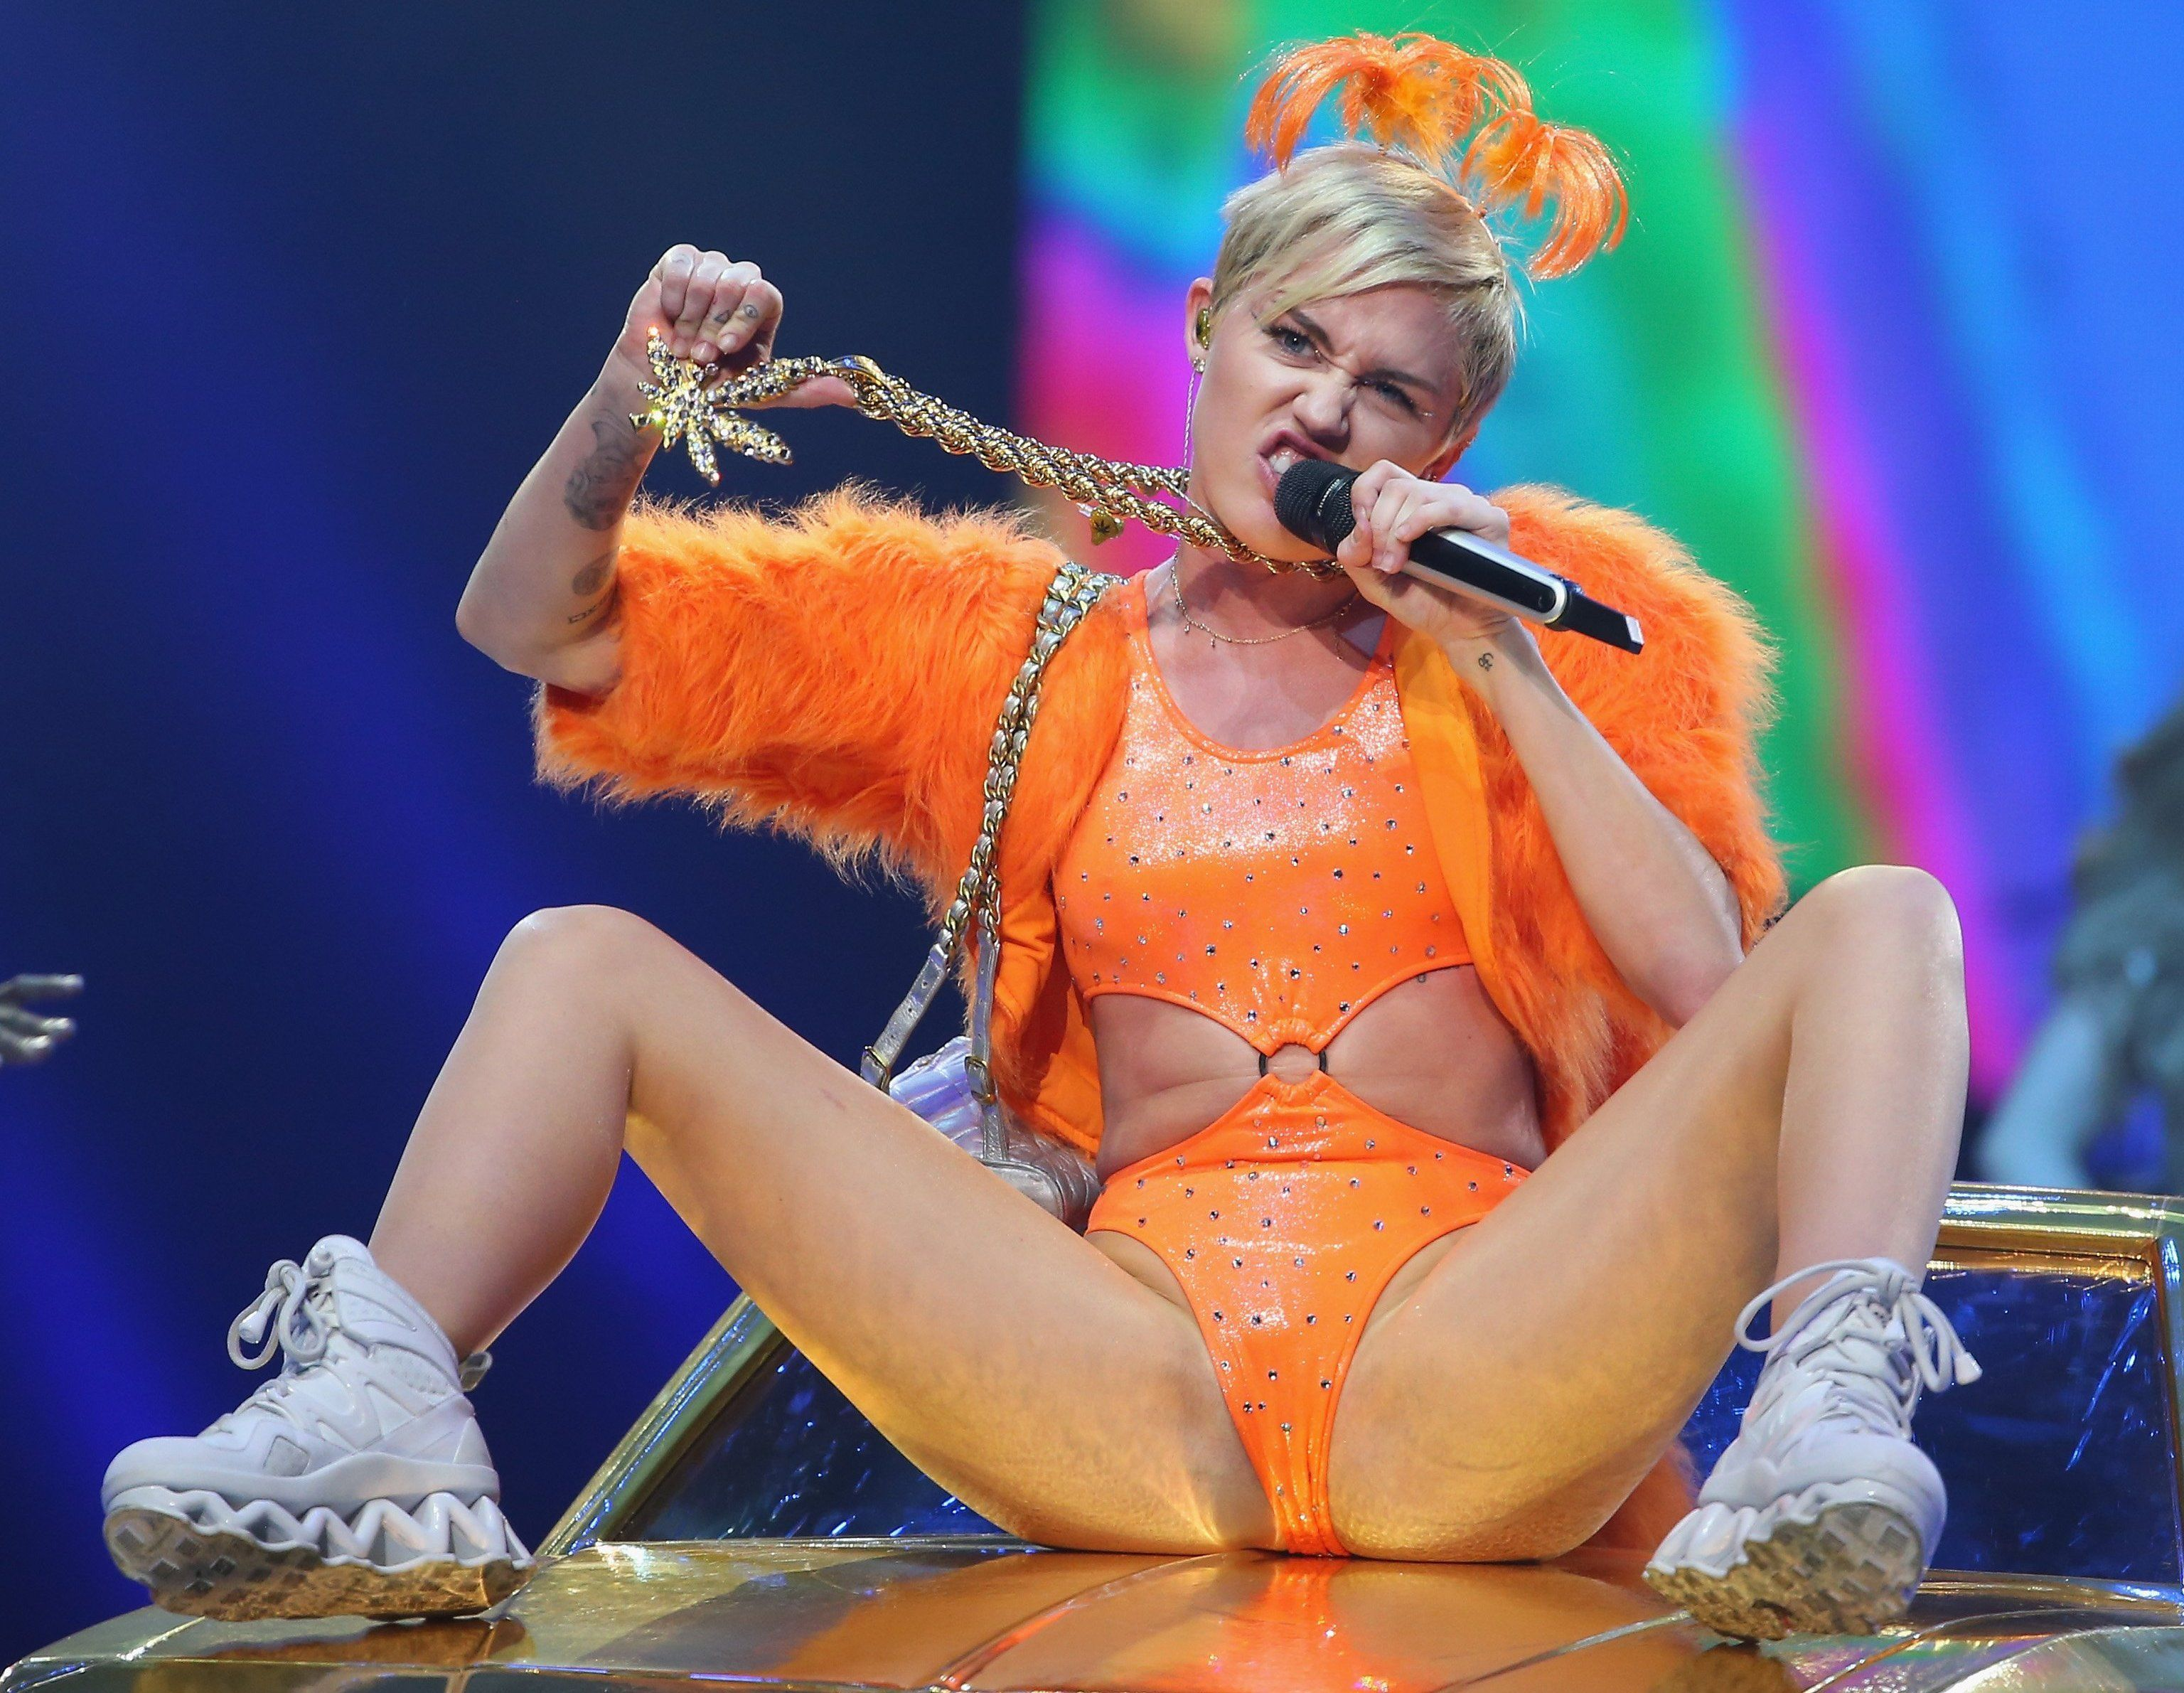 Has miley cyrus a girl she give